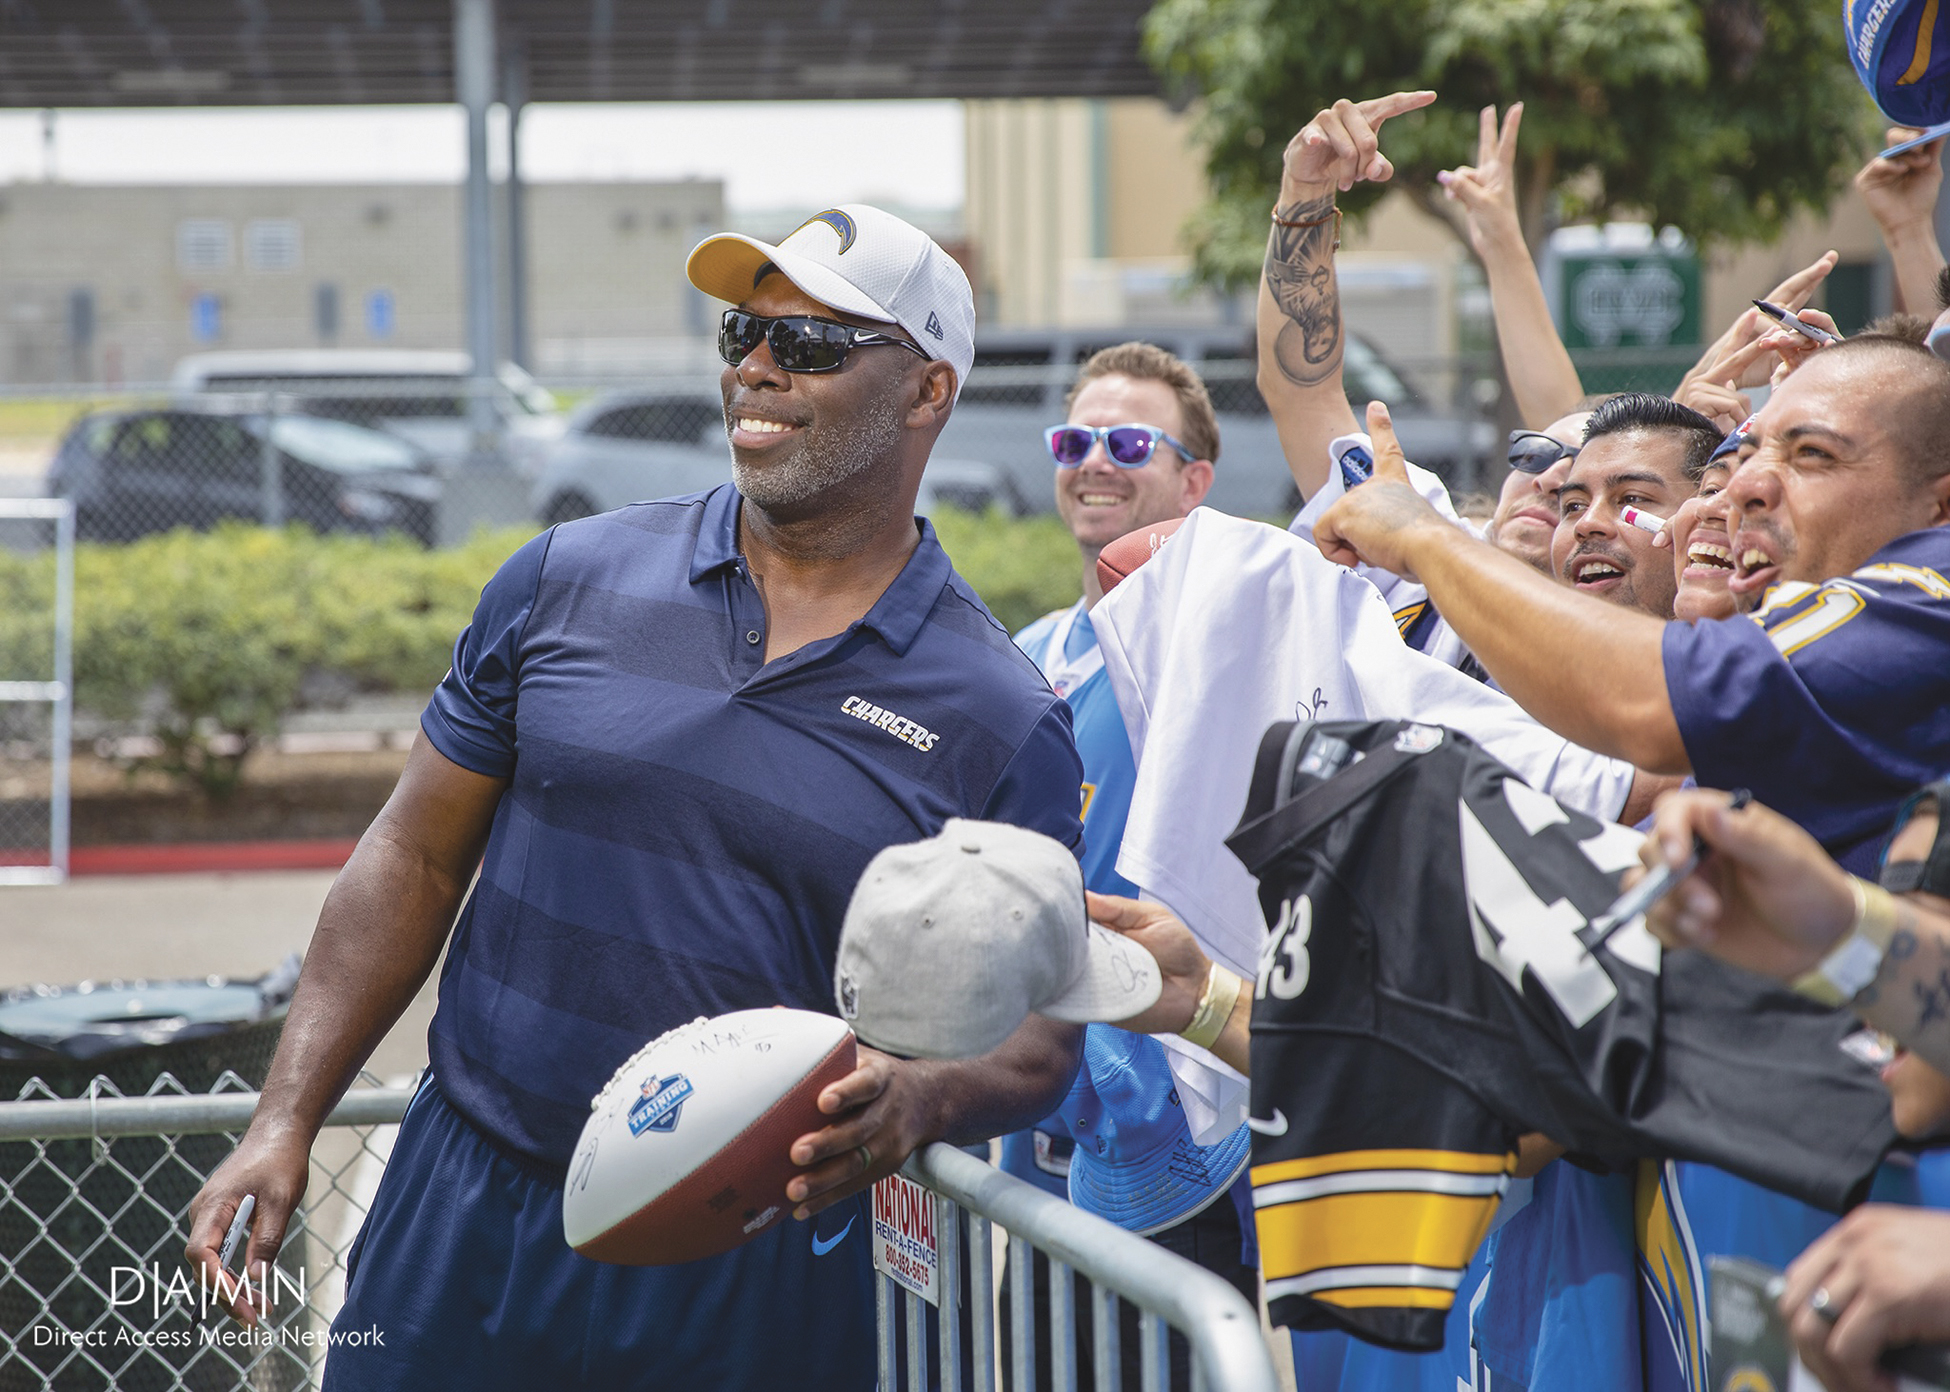 Los Angeles Chargers Training Camp pic.jpg